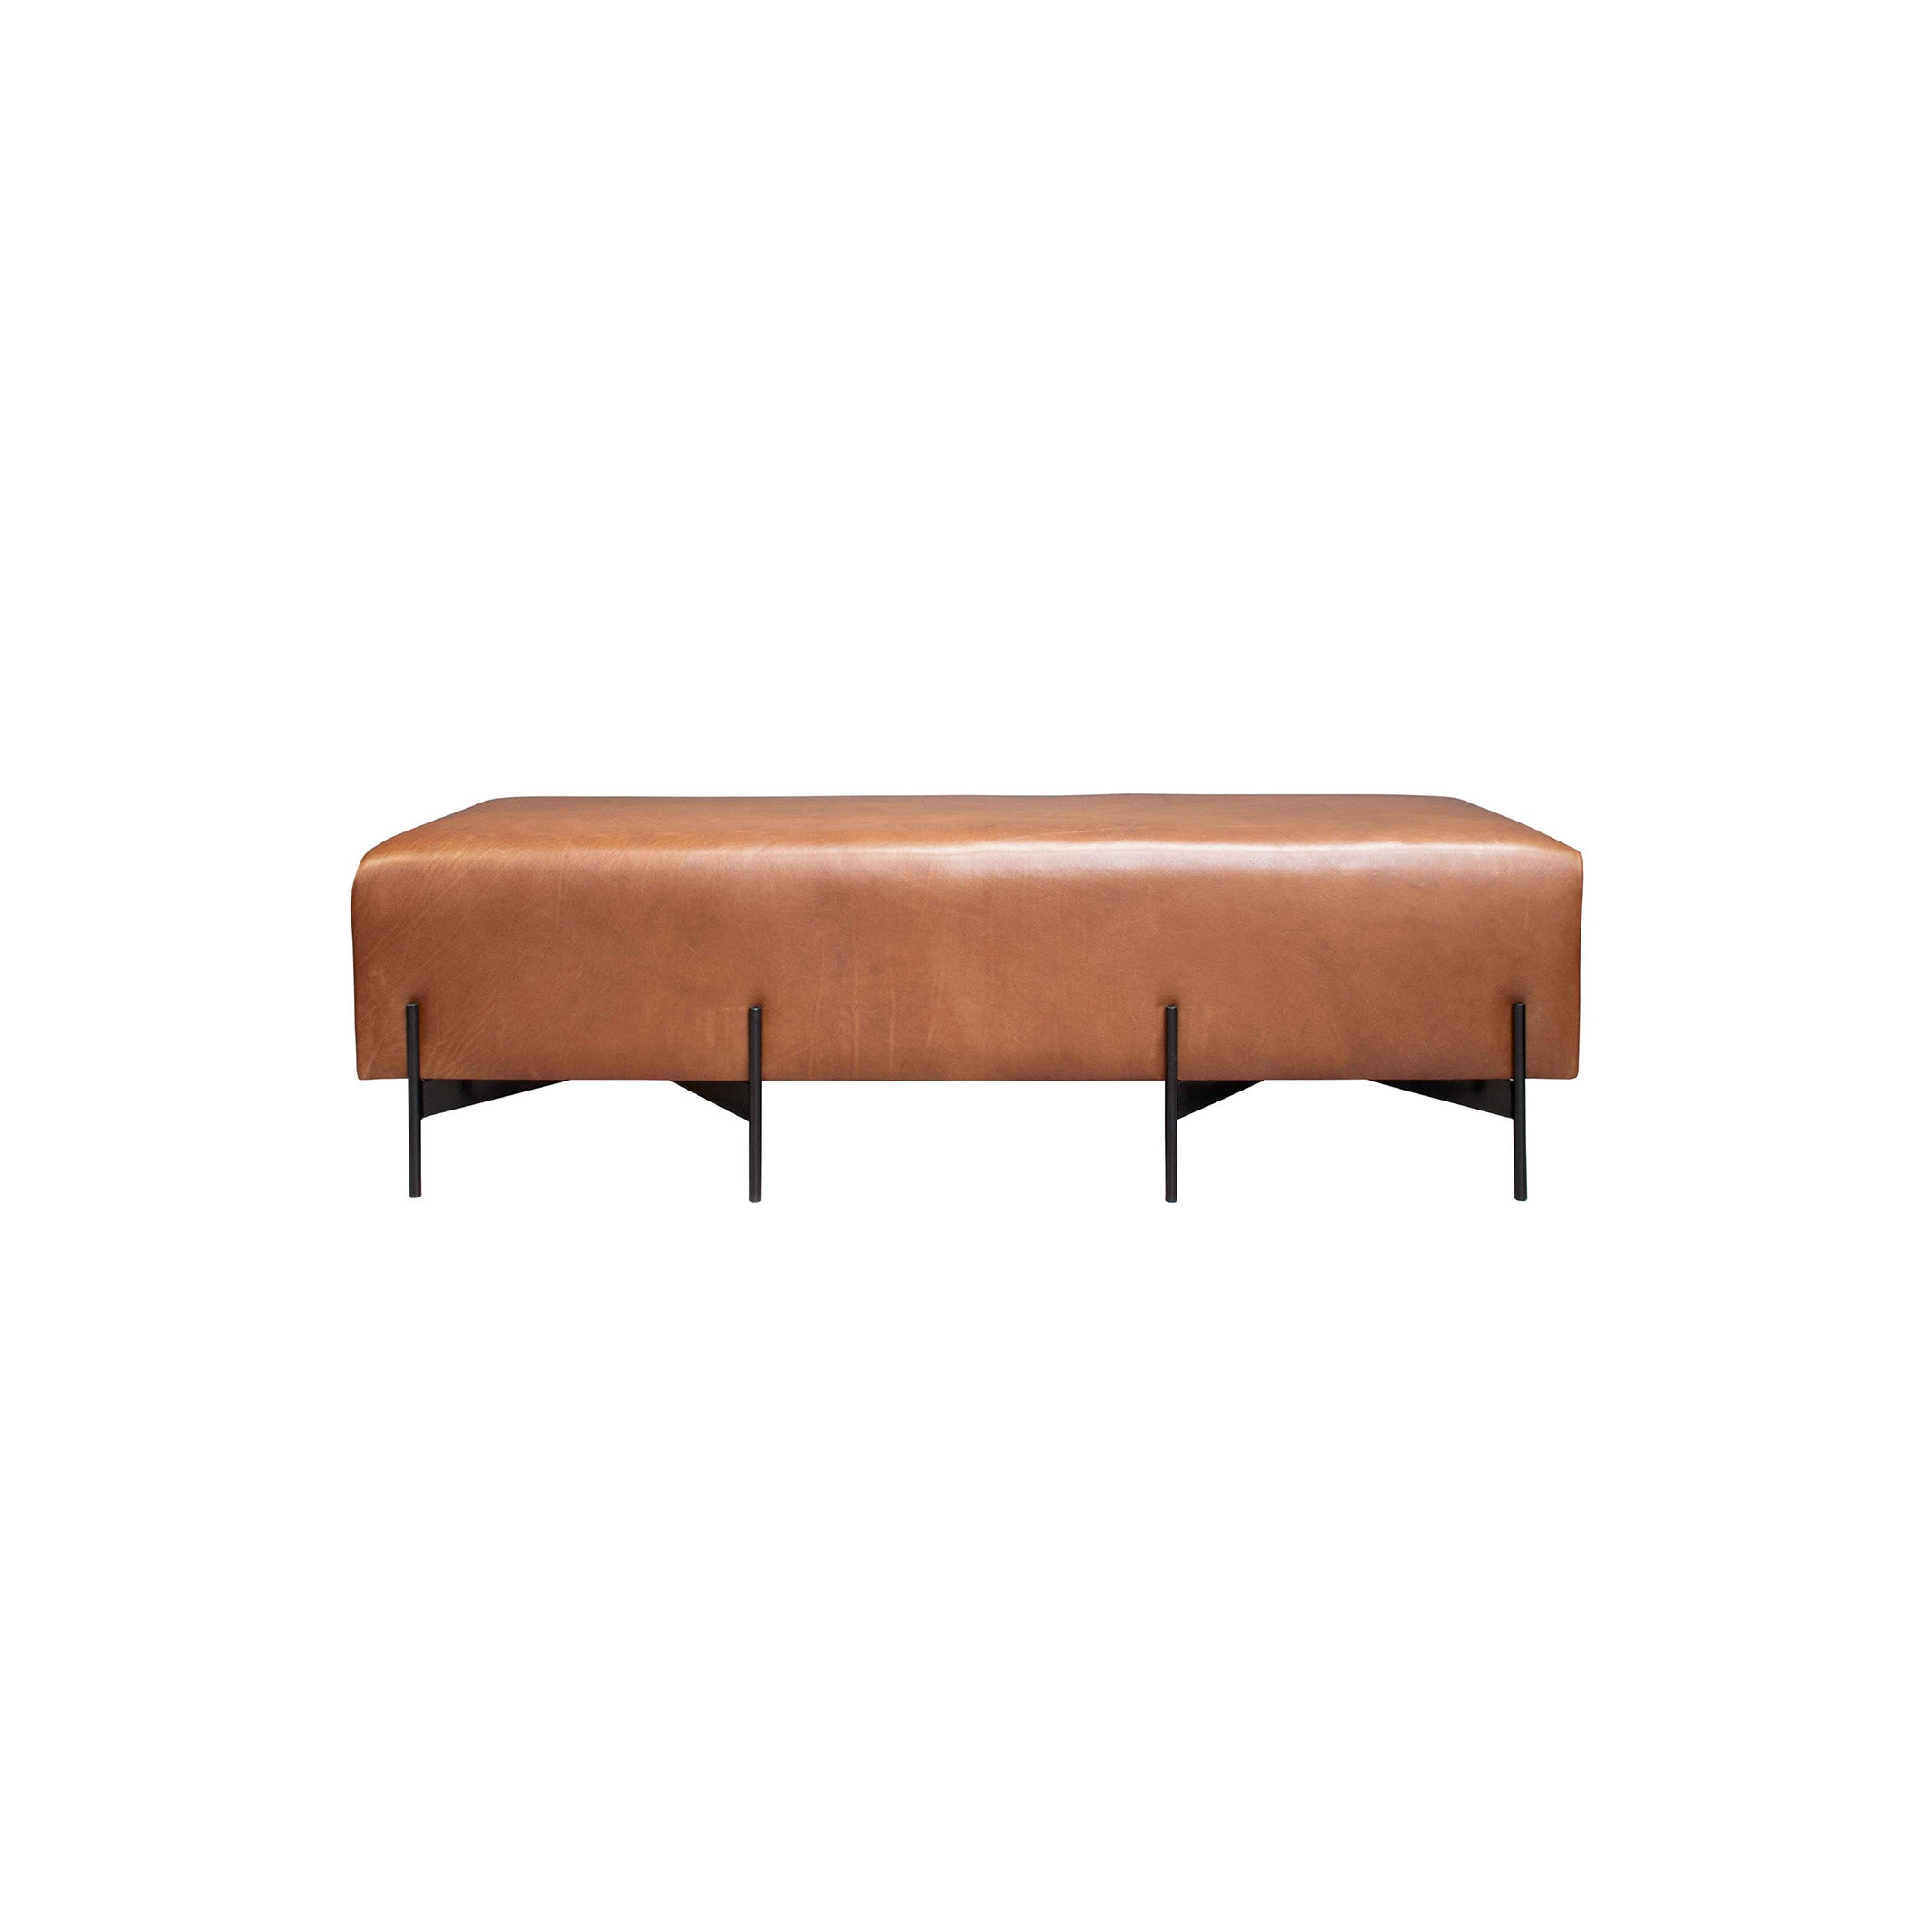 Powder coated Legs 11 Ottoman